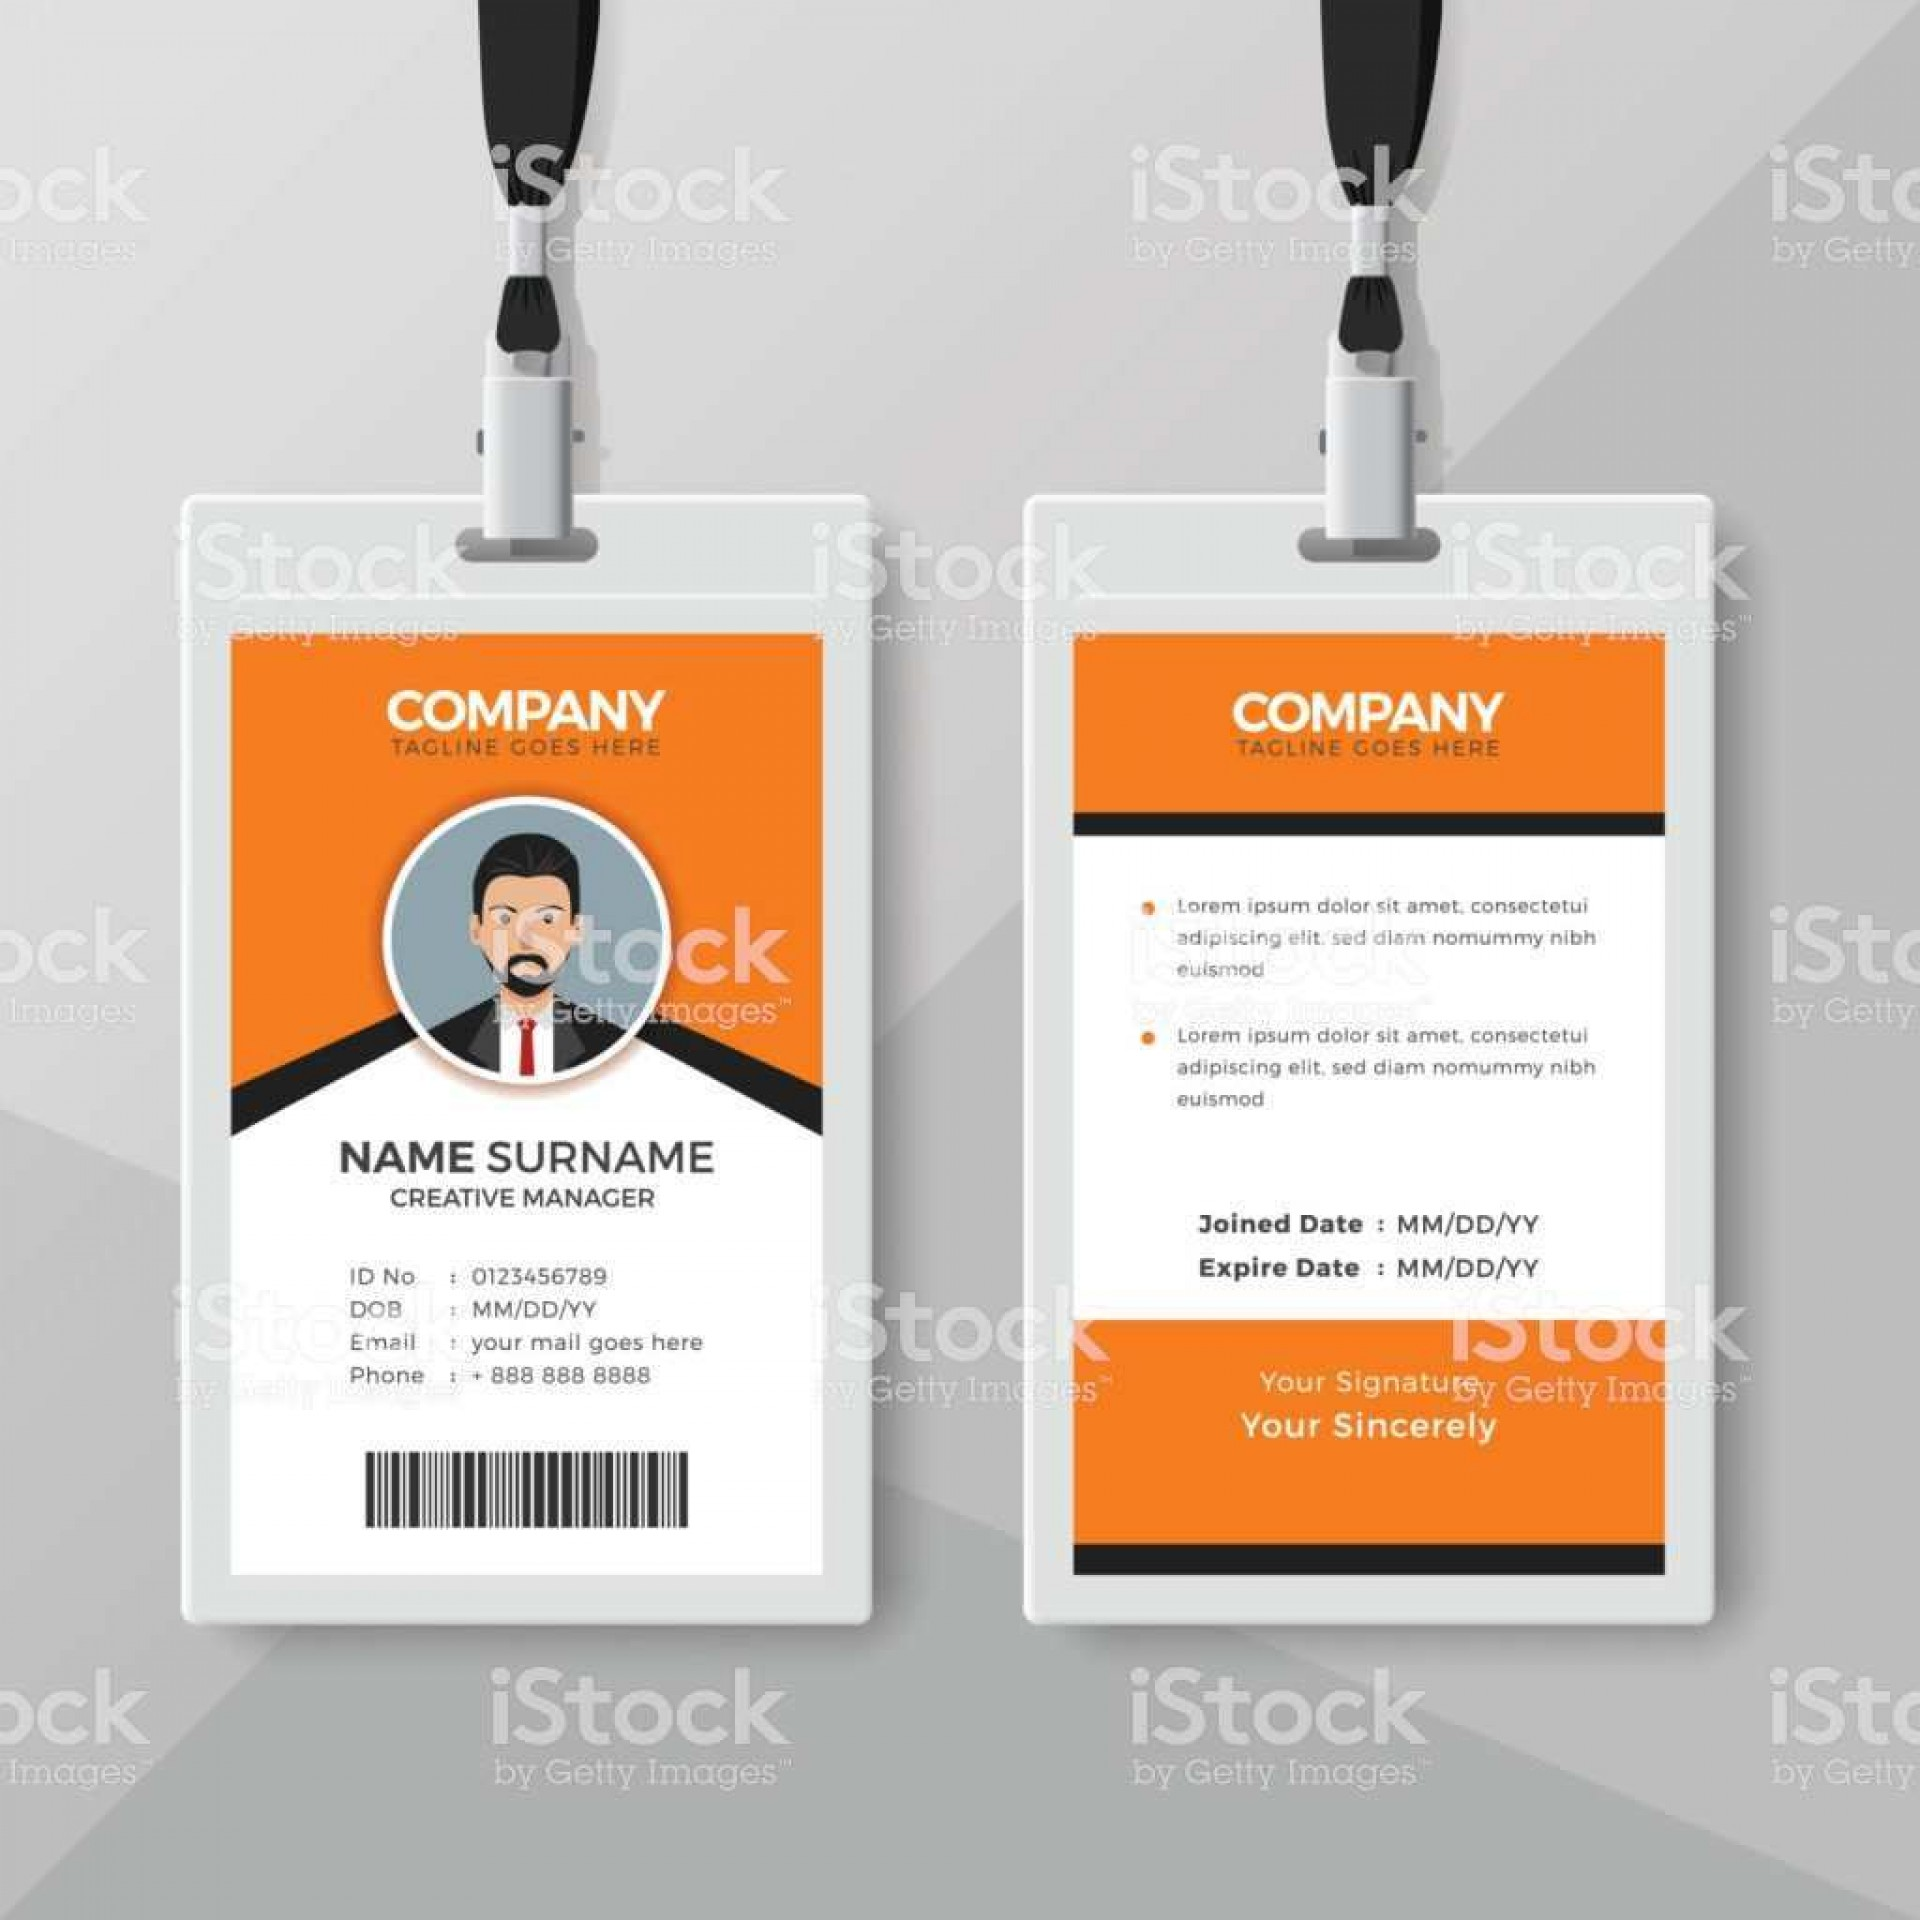 000 Excellent Blank Id Card Template Highest Clarity  Design Free Download Editable1920